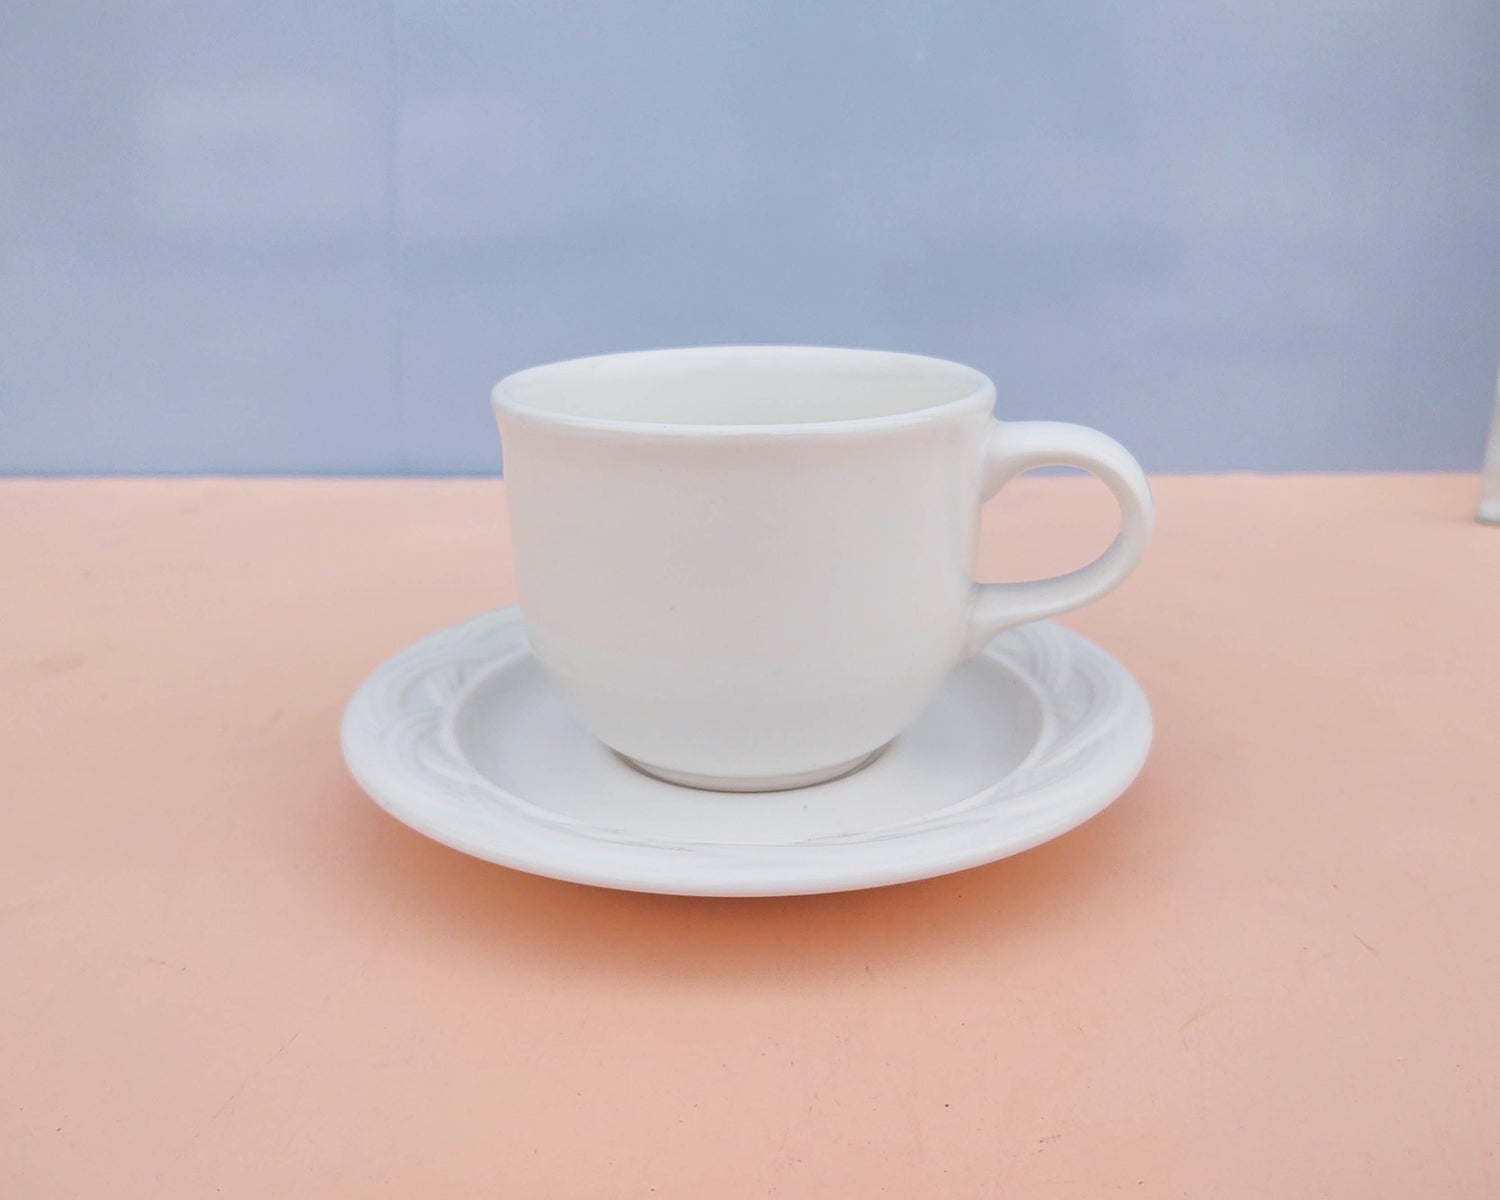 Image of Set of 4 White Ceramic Mugs + Saucers by Pfaltzgraff